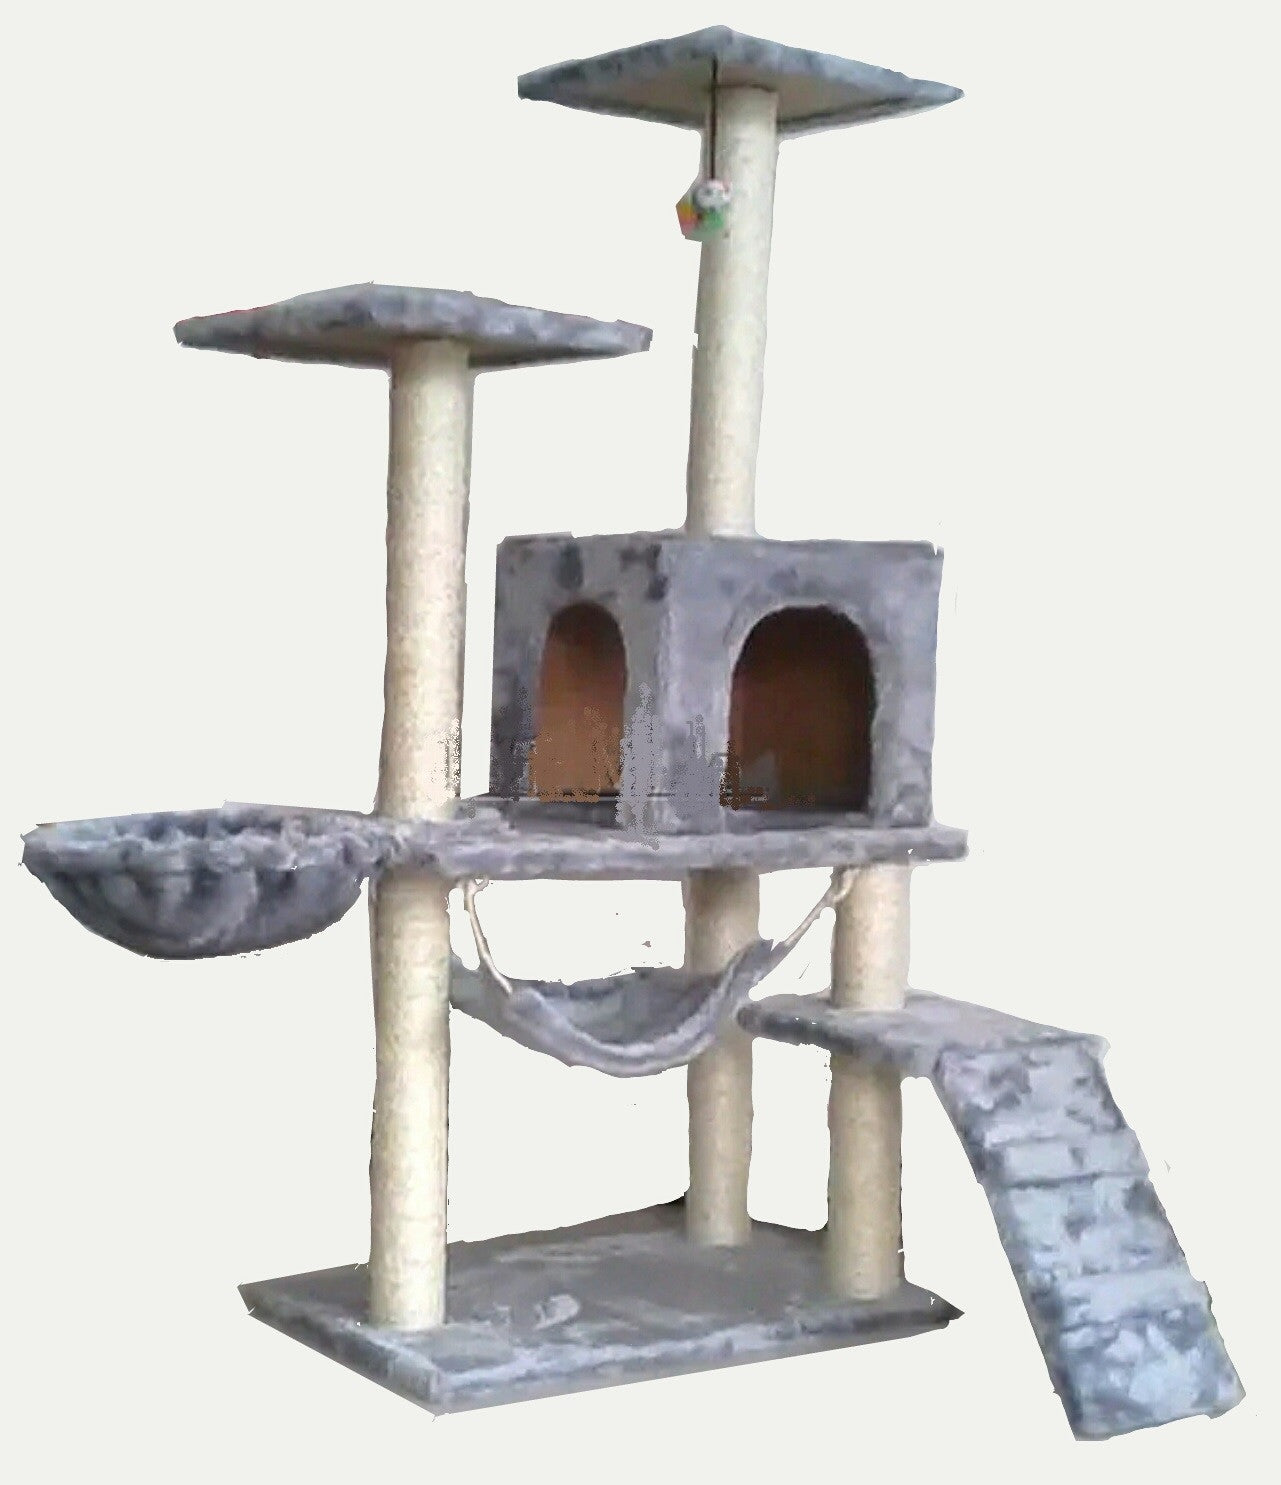 Cat Condo Cat Tree w/ Hammock Bowl - DDhouse Singapore Online Pet Supplies and Pet Products - 6